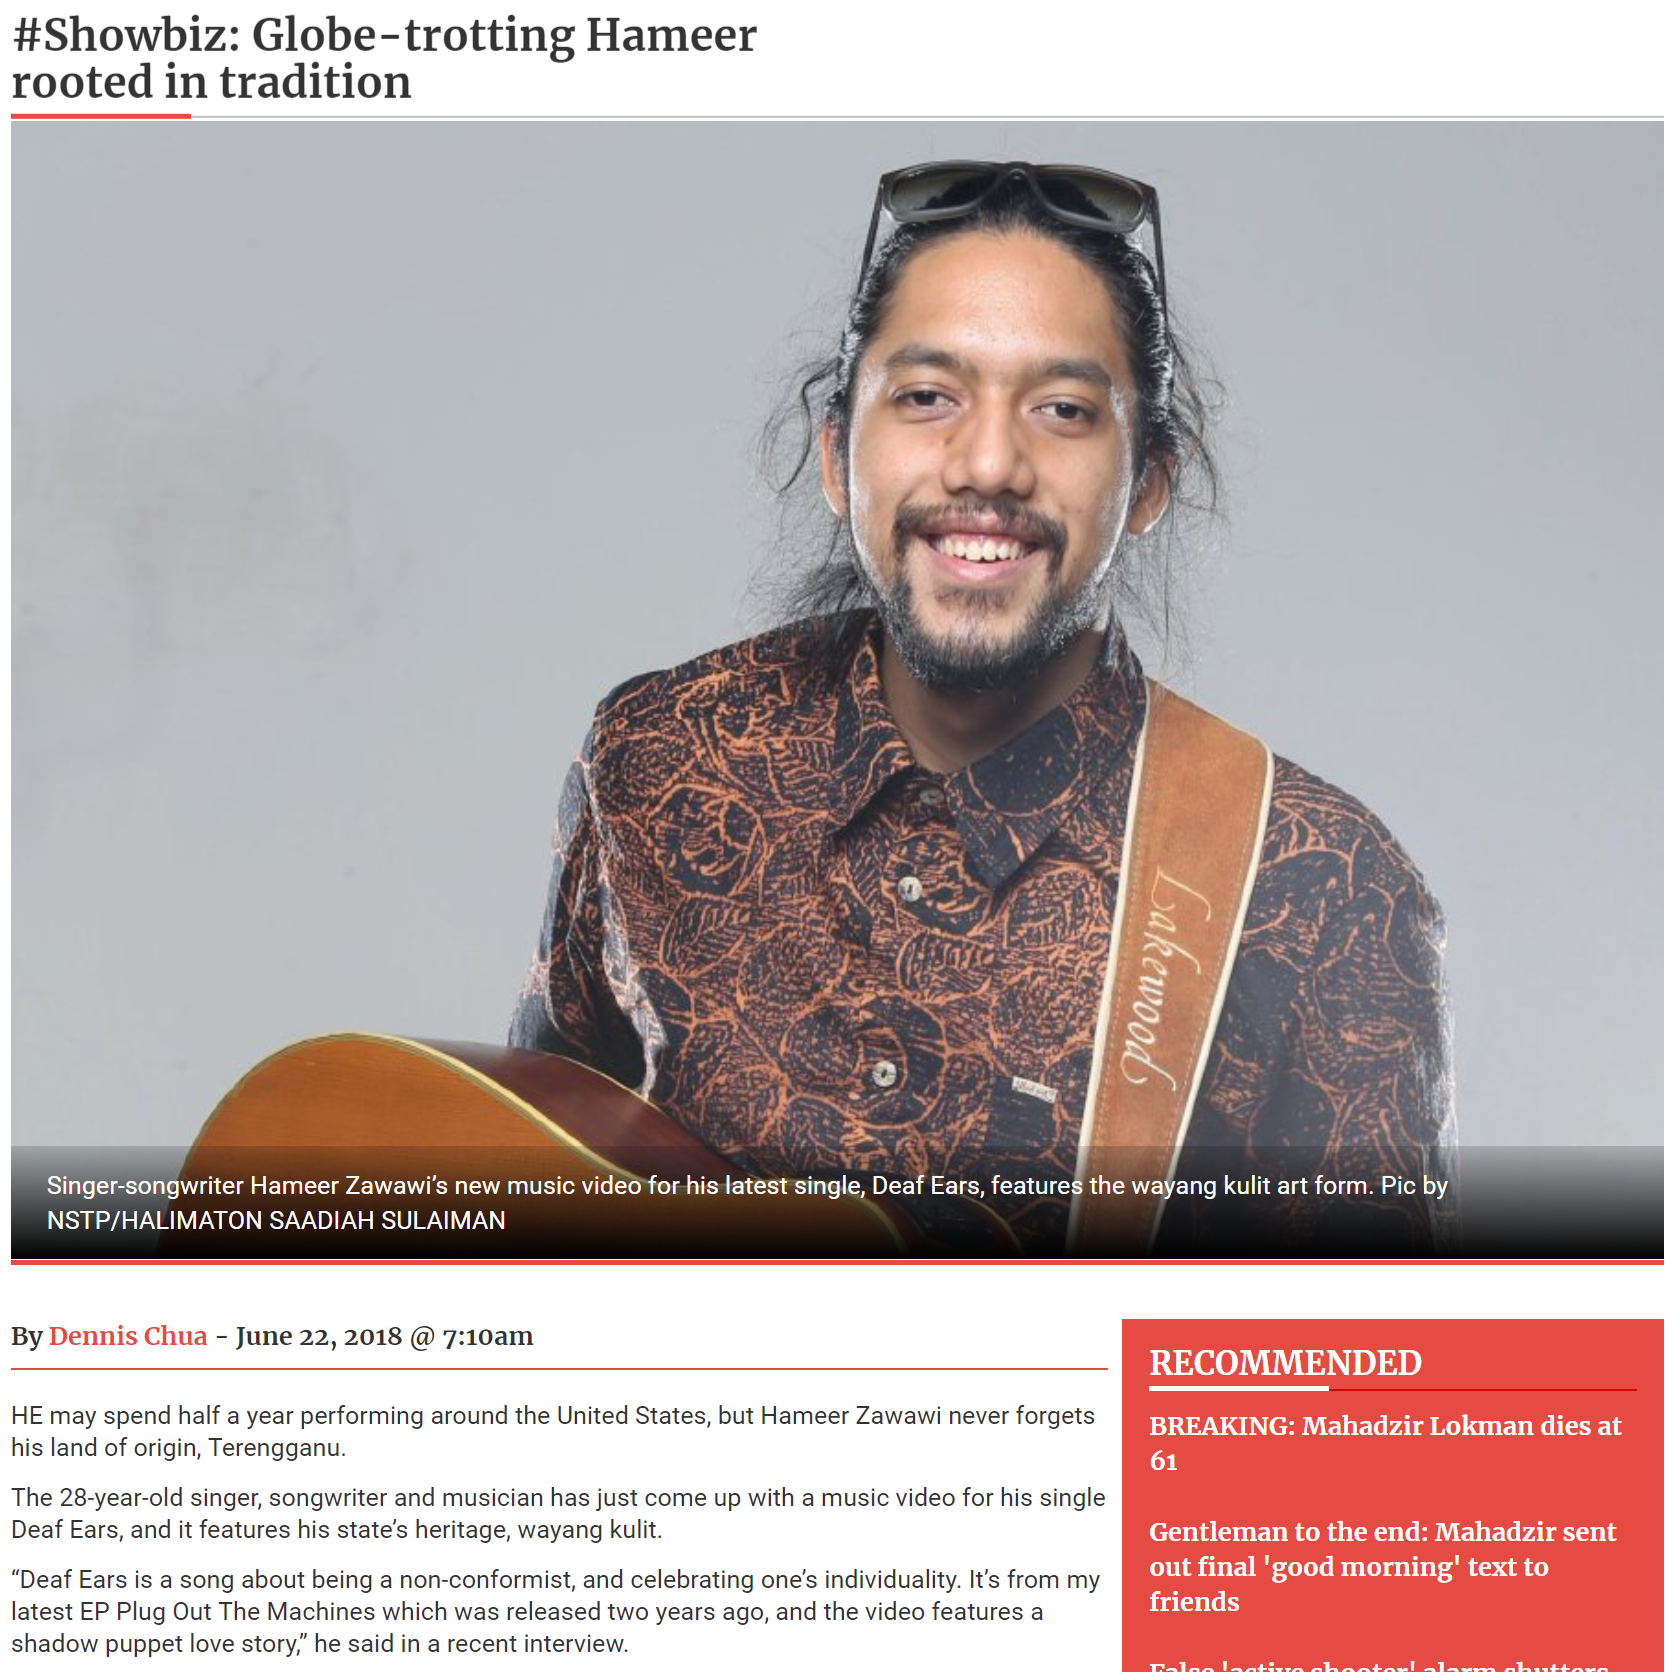 #SHOWBIZ: GLOBE-TROTTING HAMEER ROOTED IN TRADITION (KUALA LUMPUR) - HE may spend half a year performing around the United States, but Hameer Zawawi never forgets his land of origin, Terengganu.The 28-year-old singer, songwriter and musician has just come up with a music video for his single Deaf Ears, and it features his state's heritage, wayang kulit.